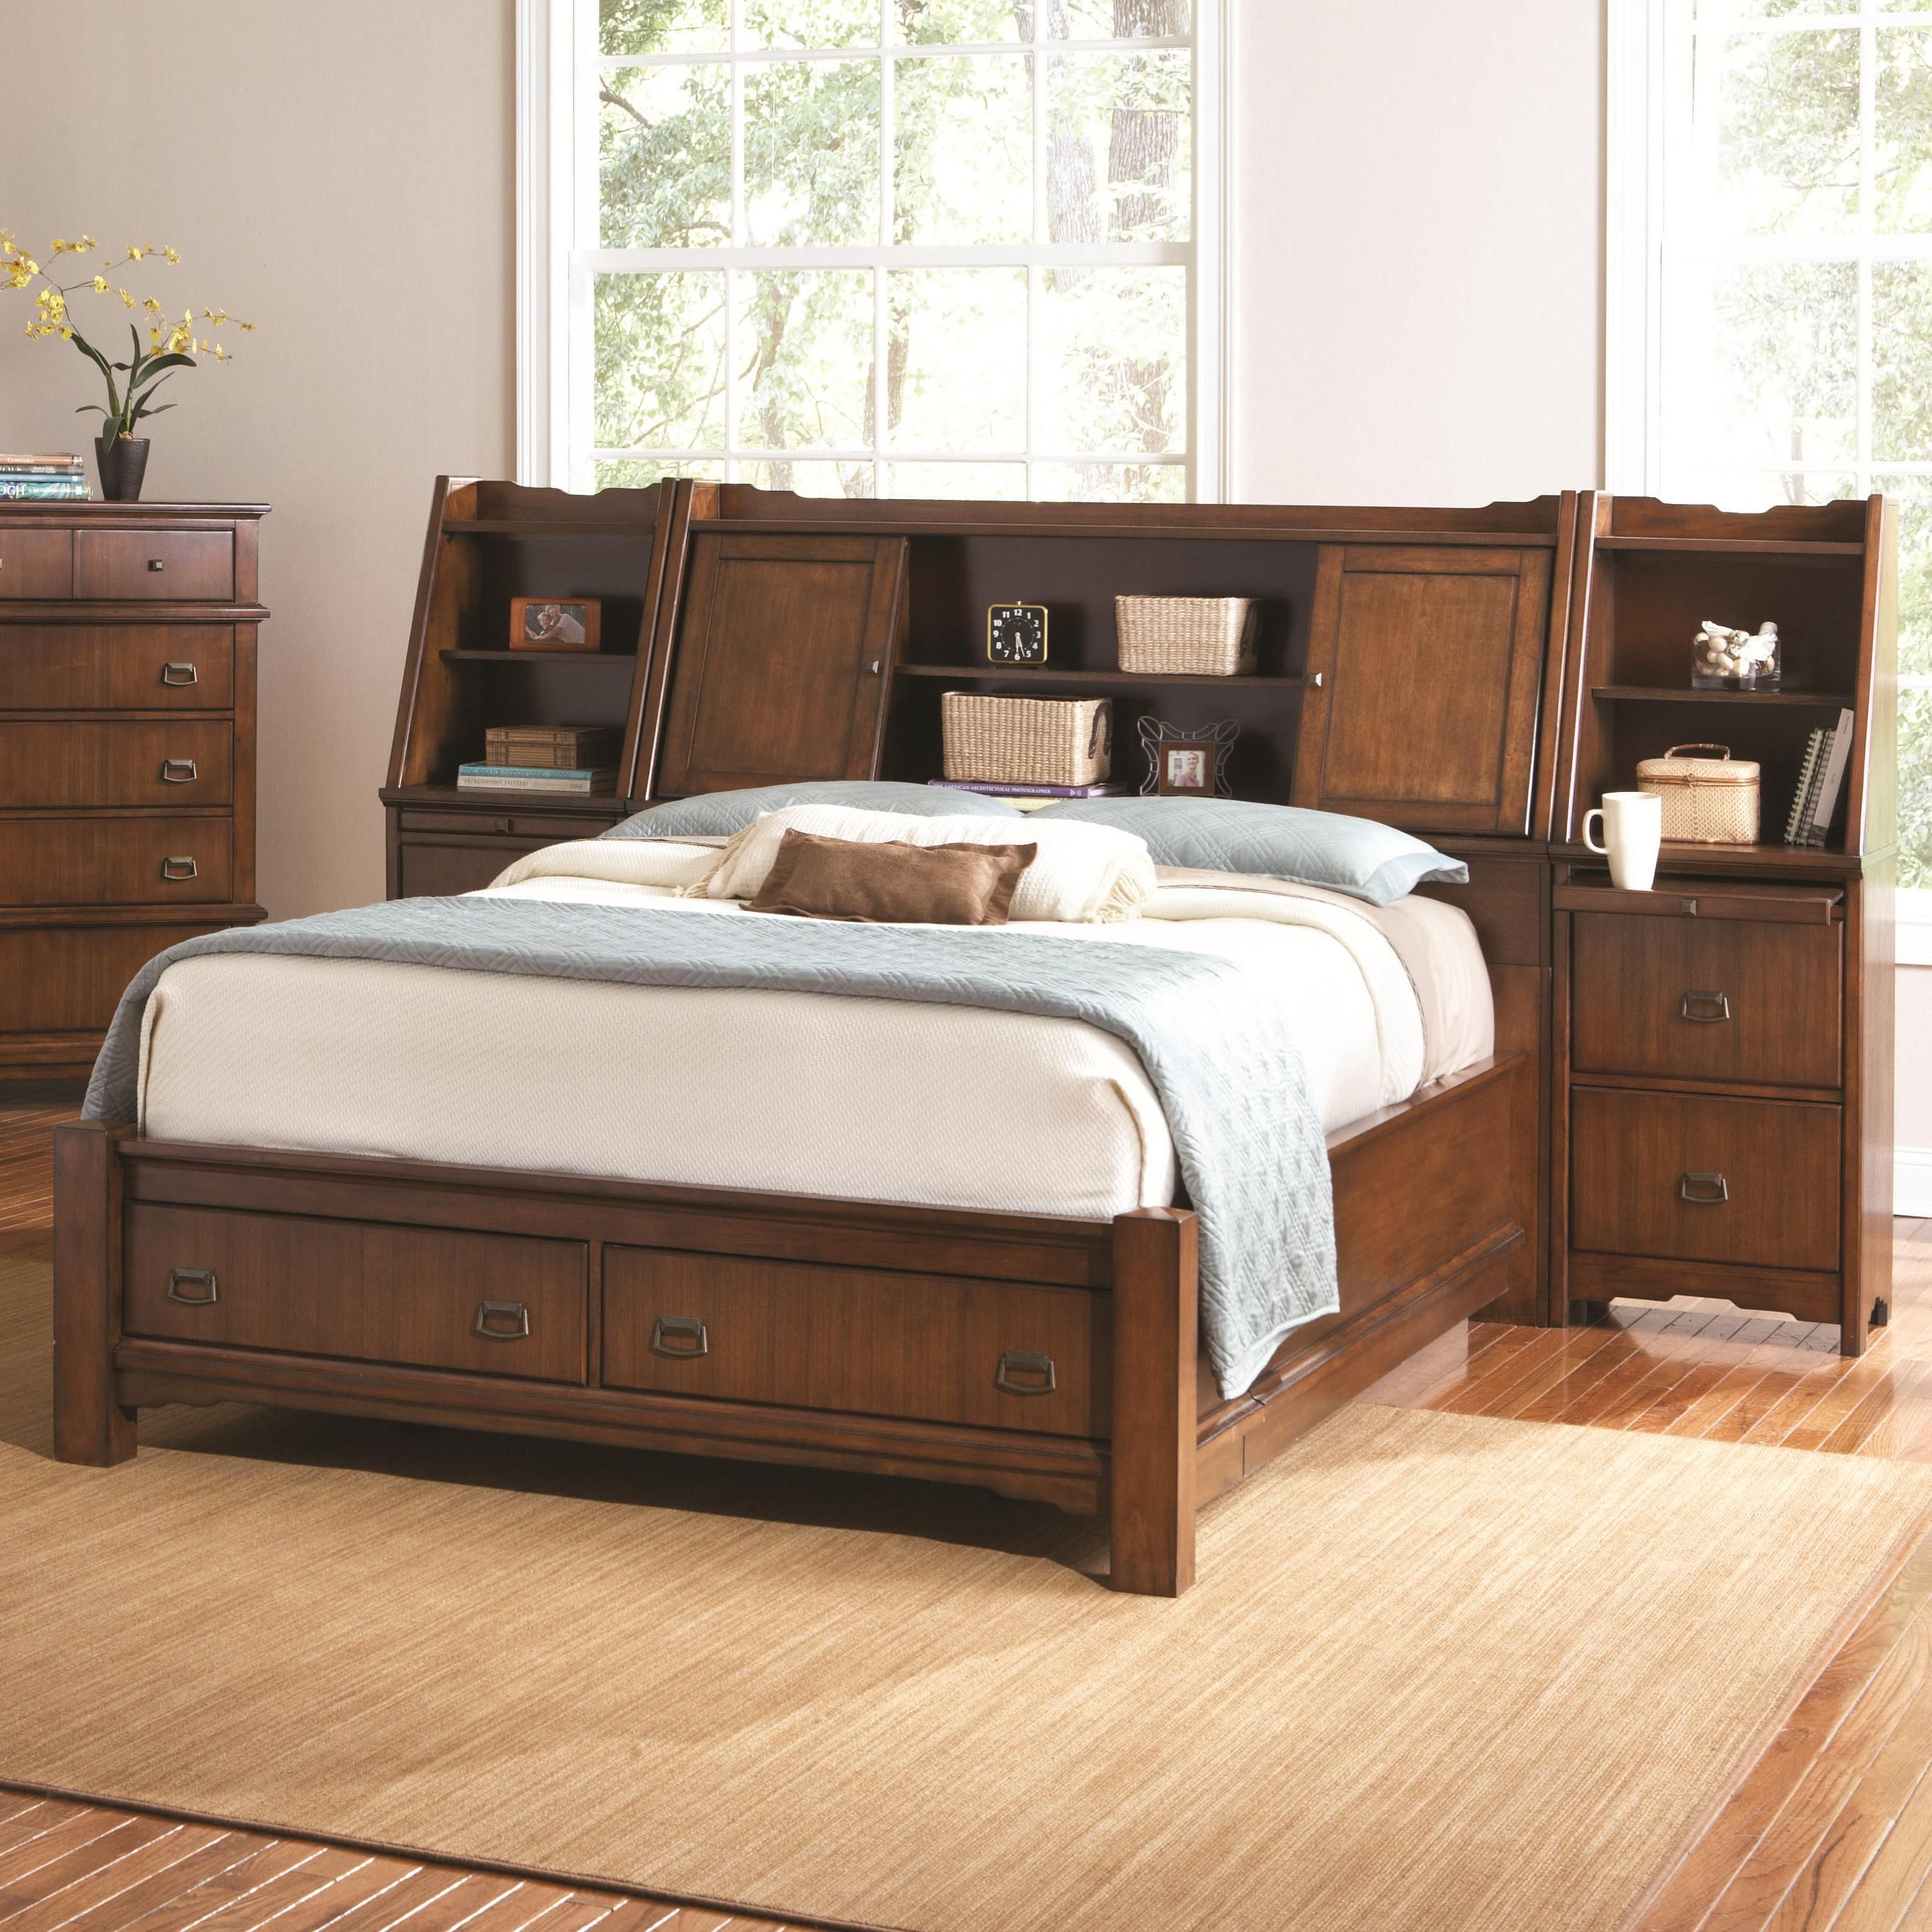 grendel eastern king bookcase bed with footboard storage and hutch headboard by coaster coaster